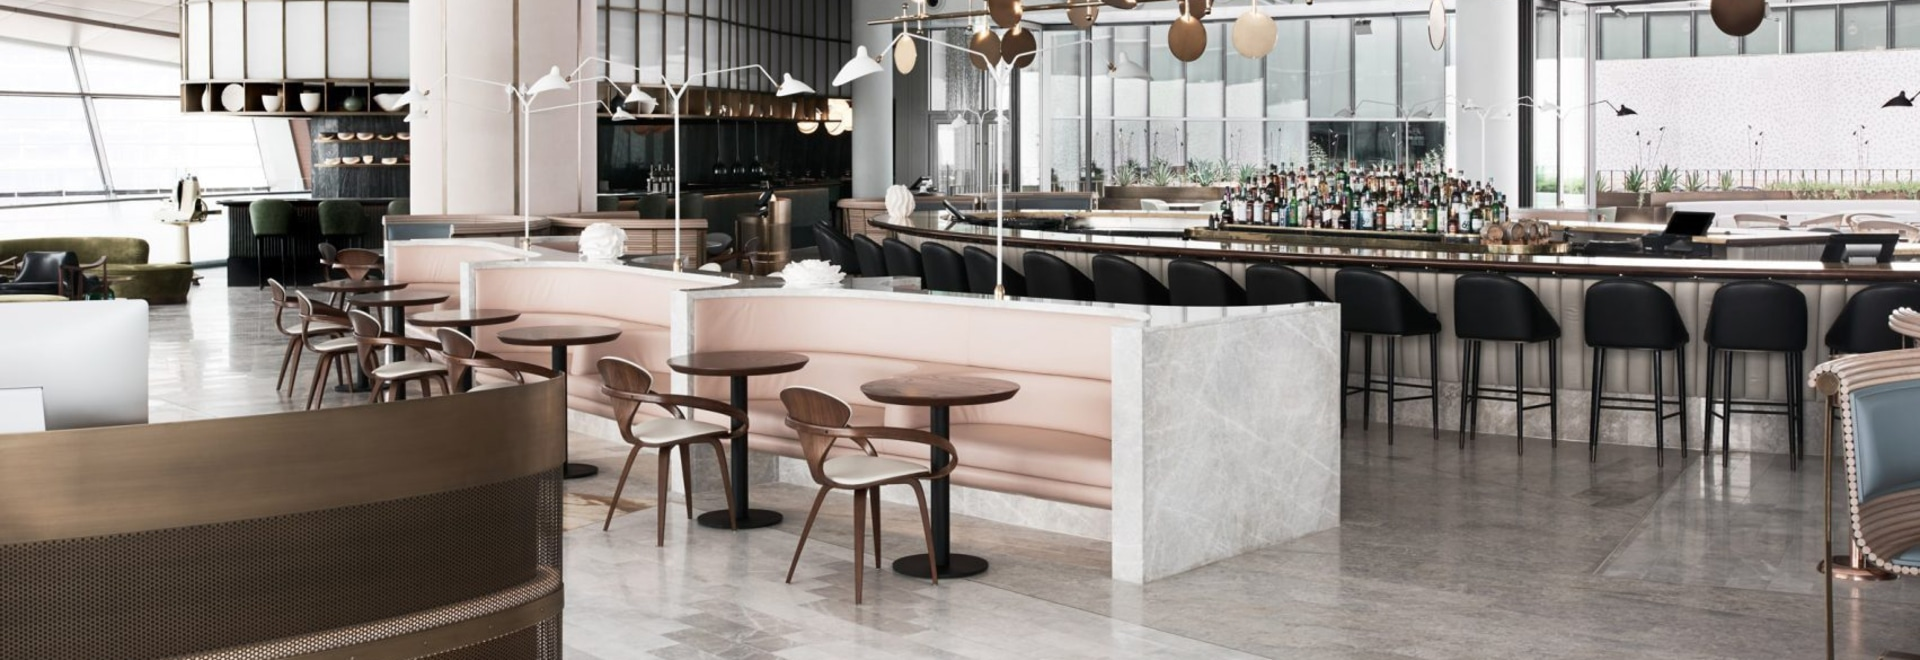 Ocean-themed restaurant by Alexander & Co and Tribe Studio opens on rooftop of Dubai Opera